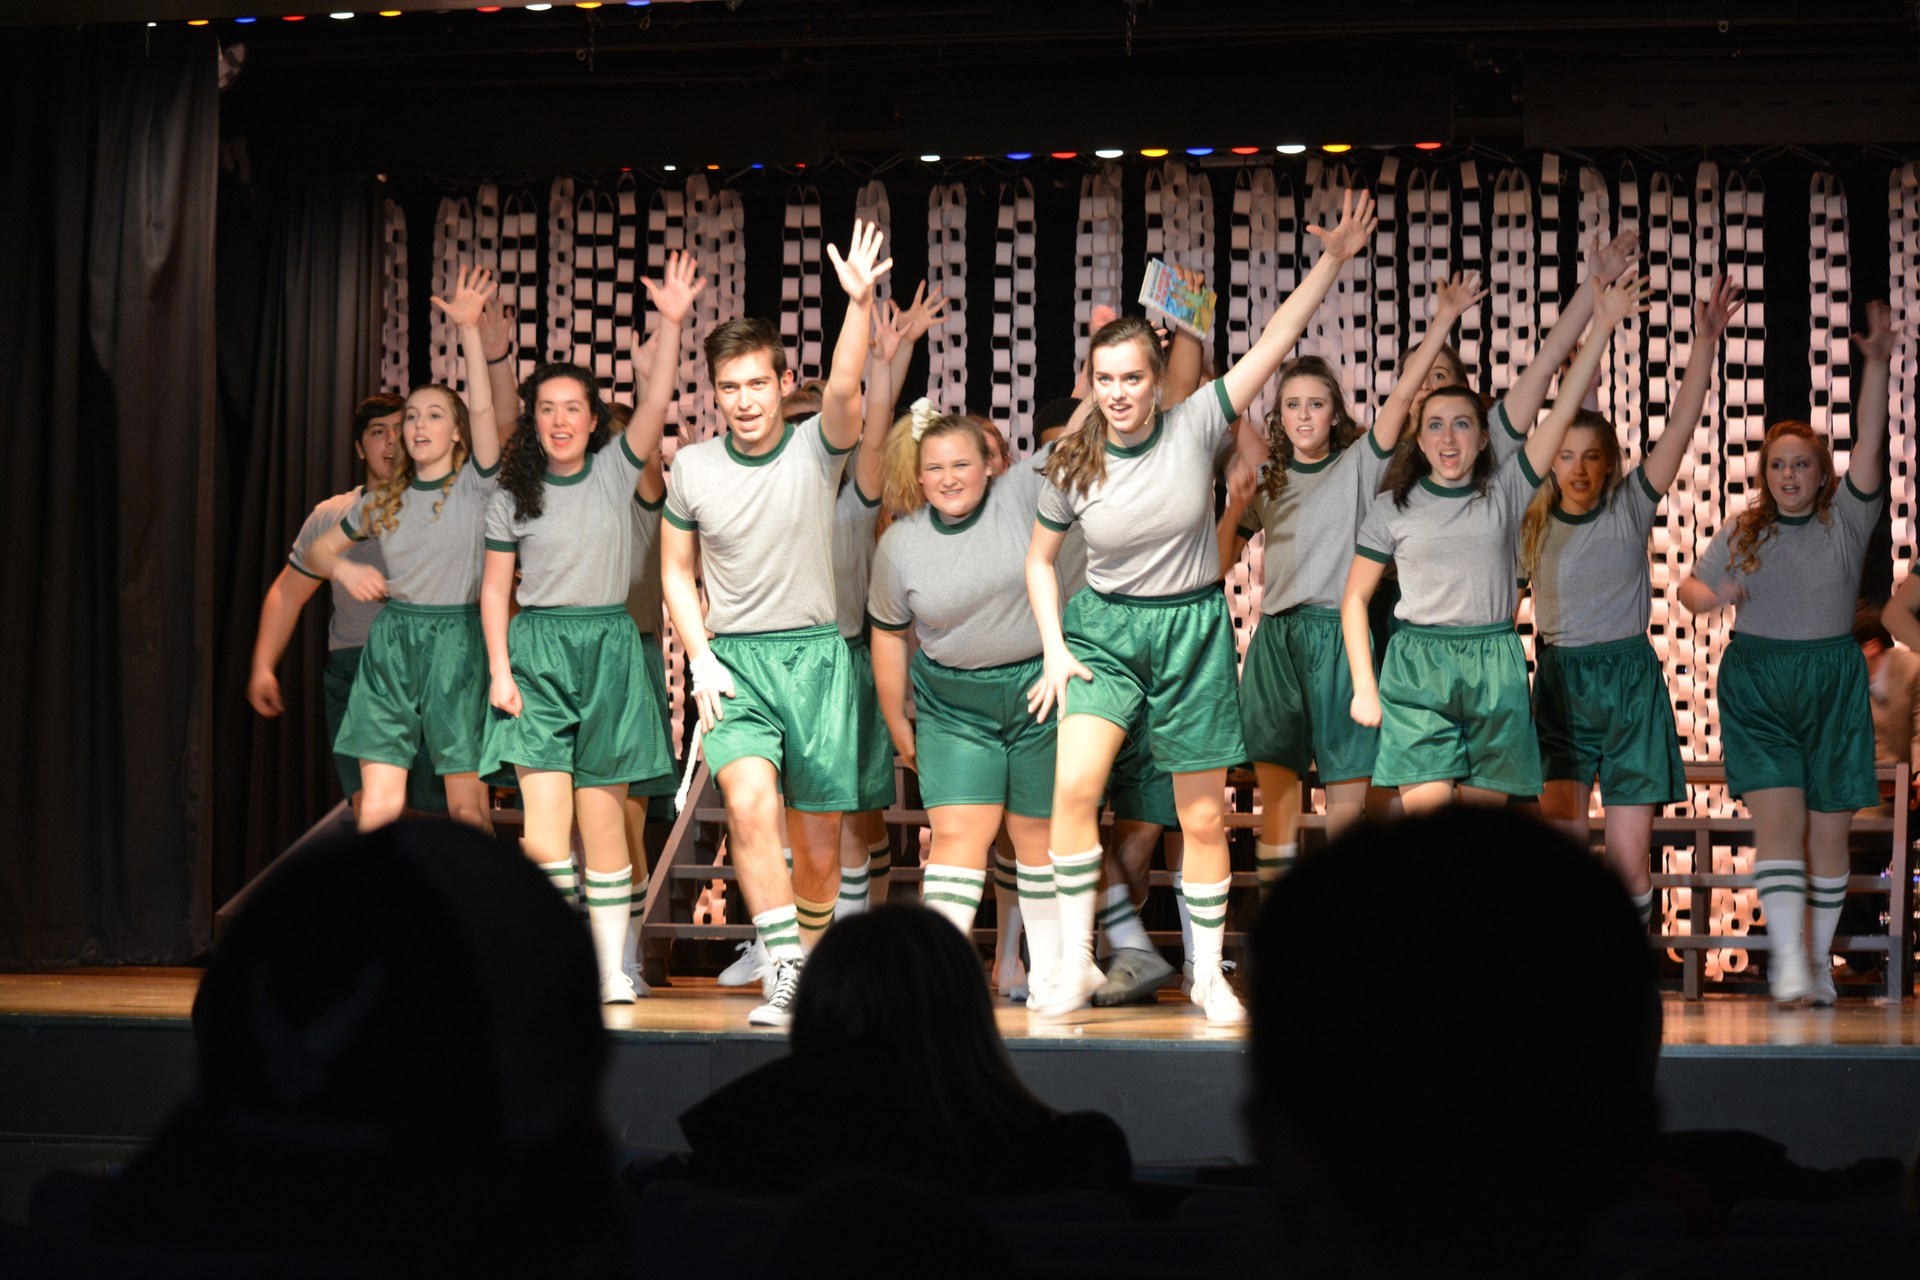 OLSH students performing I'm Free from Footloose the musical